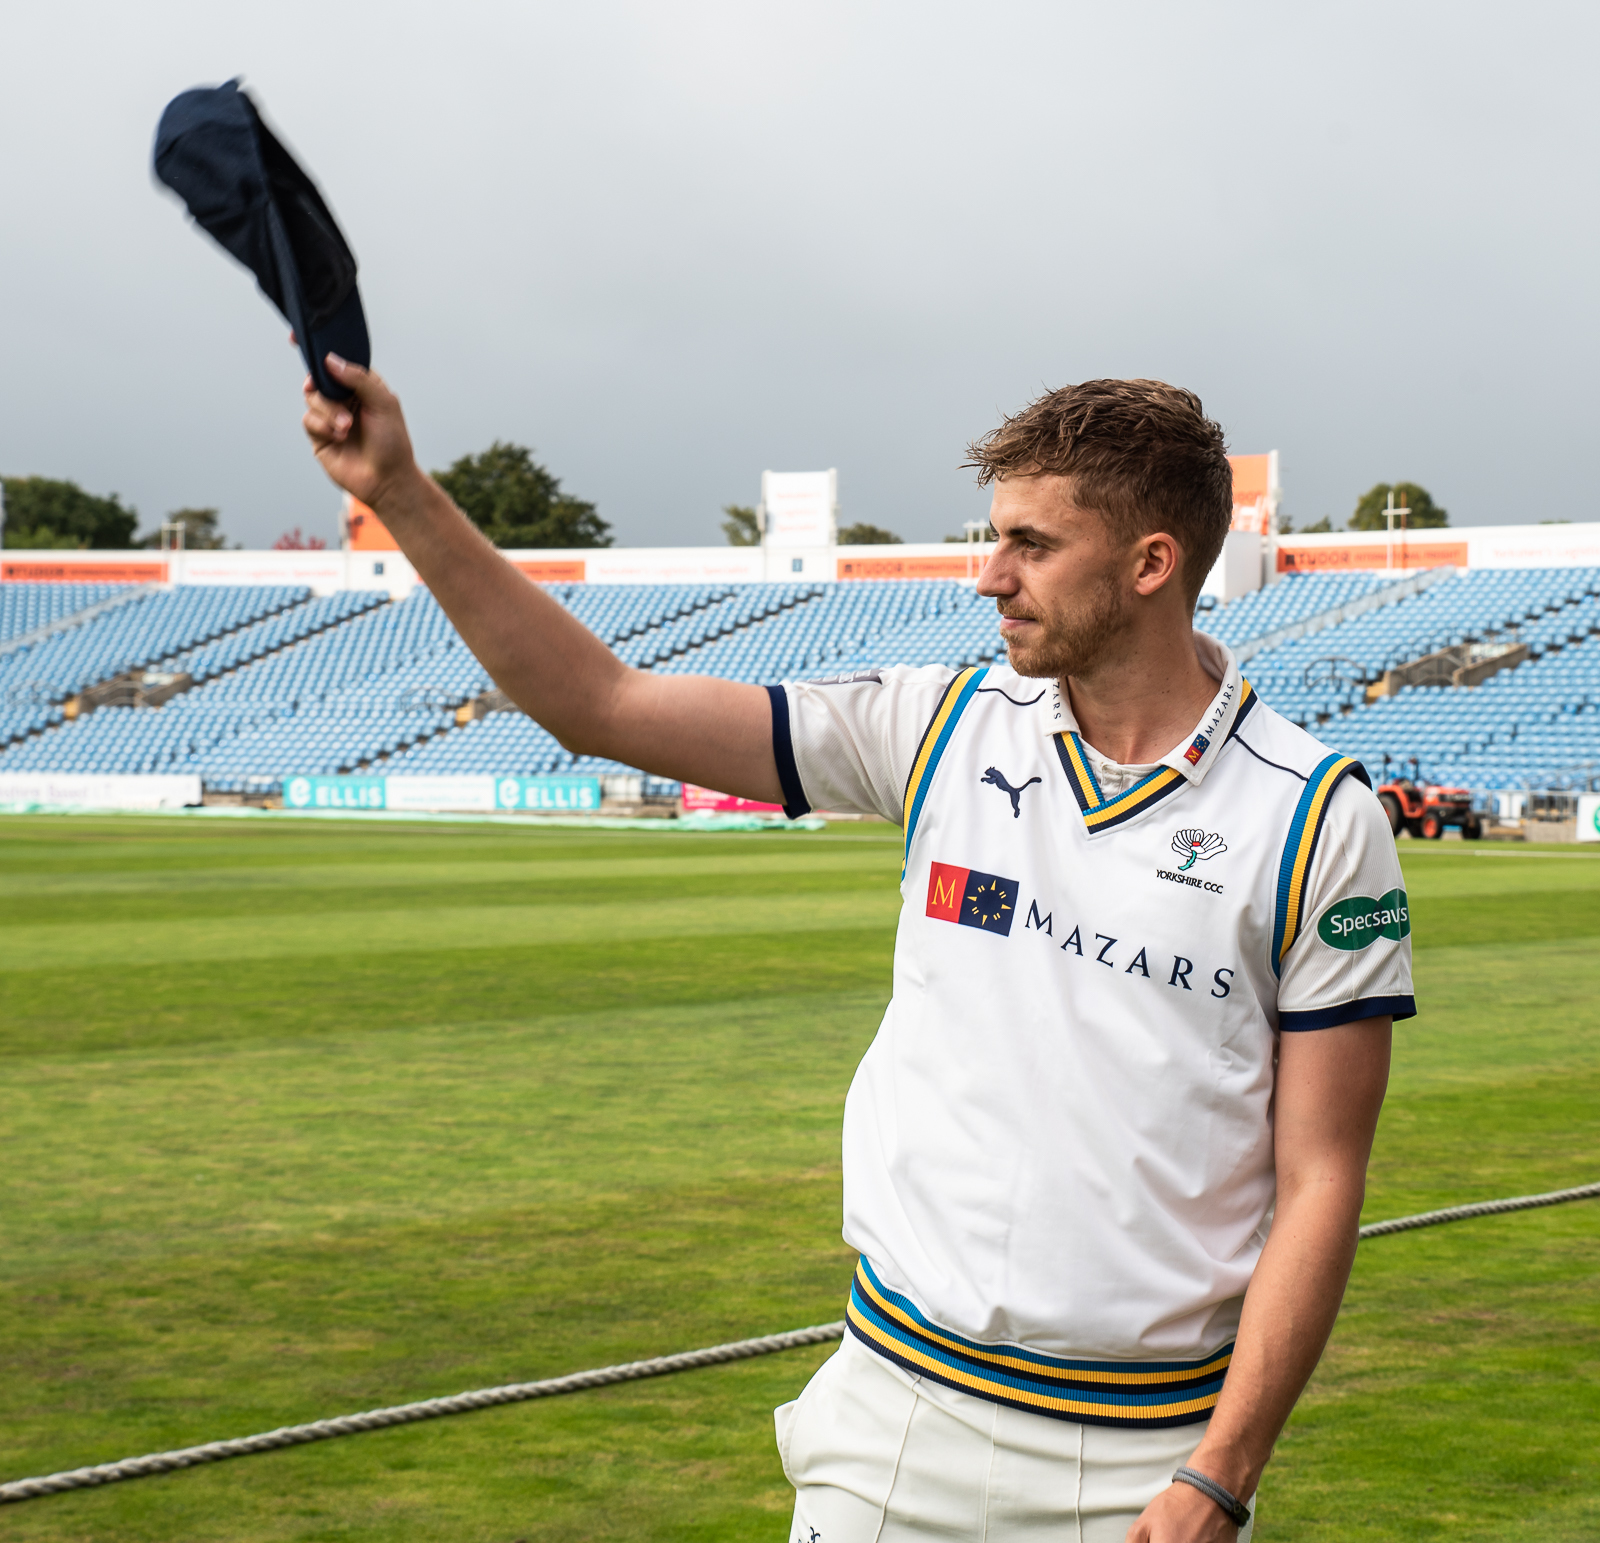 Ben Coad shows off his county cap after being presented with it before the match against Hampshire Picture: Ray Spencer